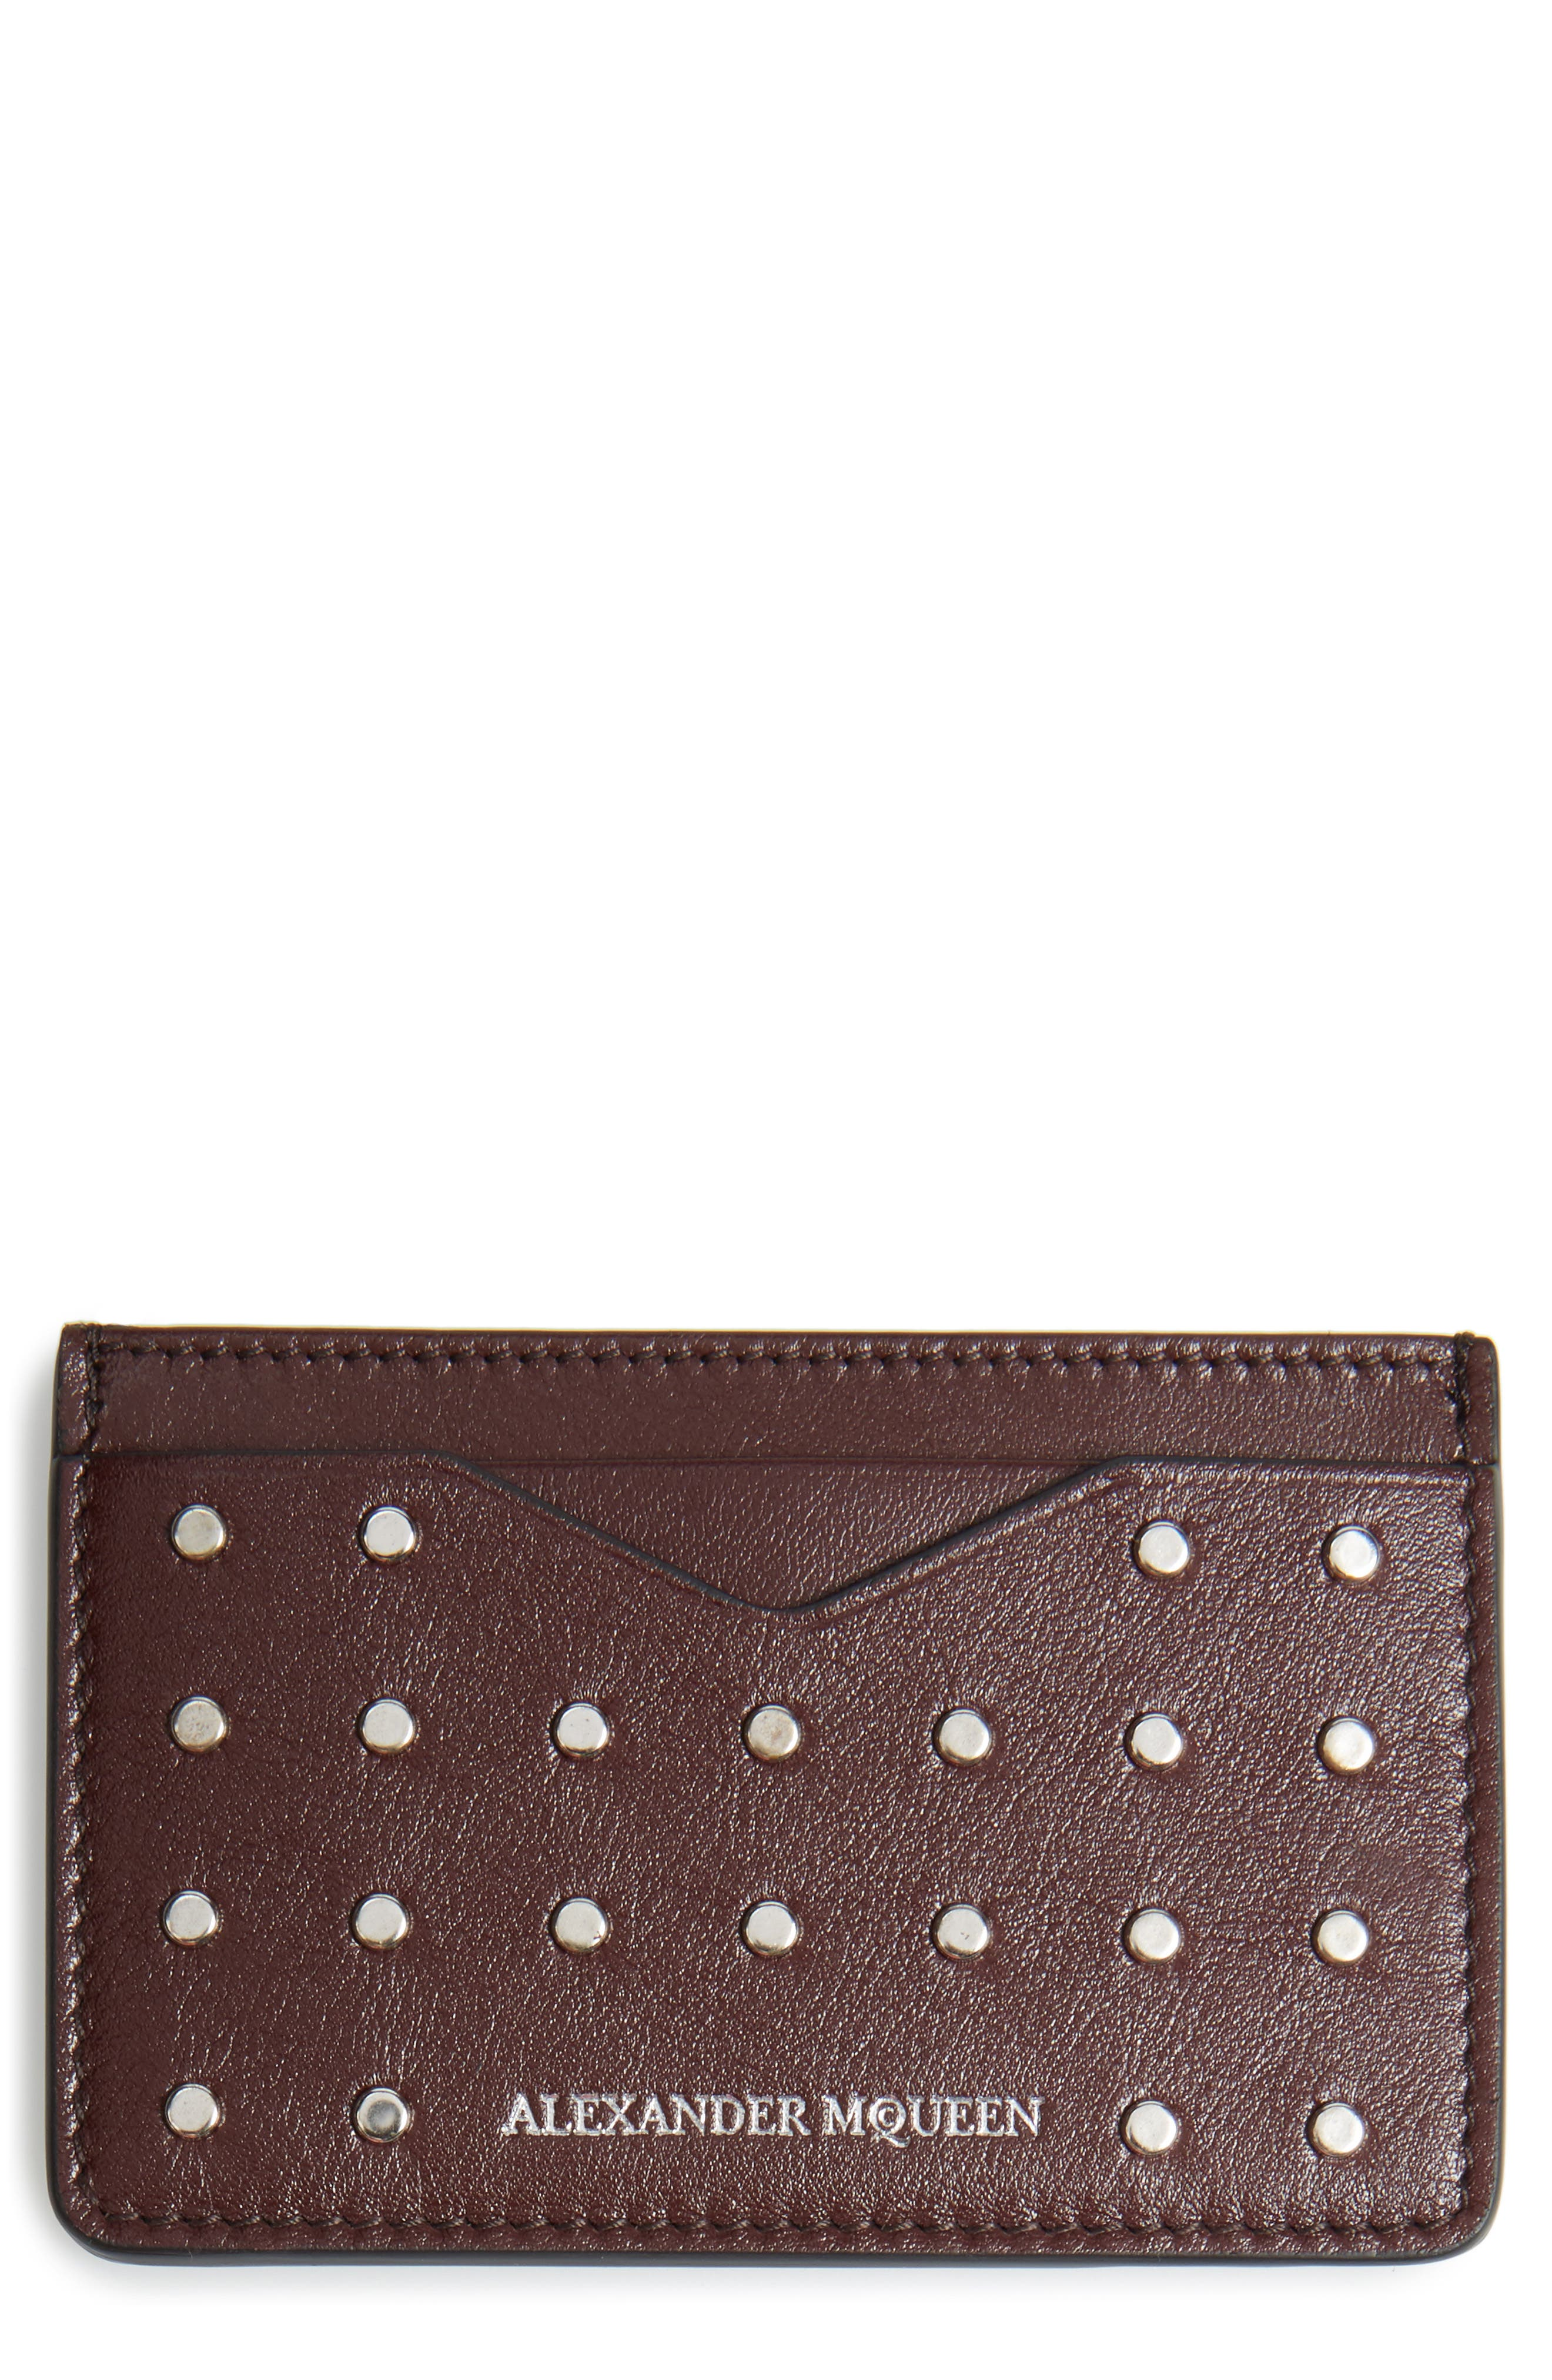 ALEXANDER MCQUEEN Studded Leather Card Case